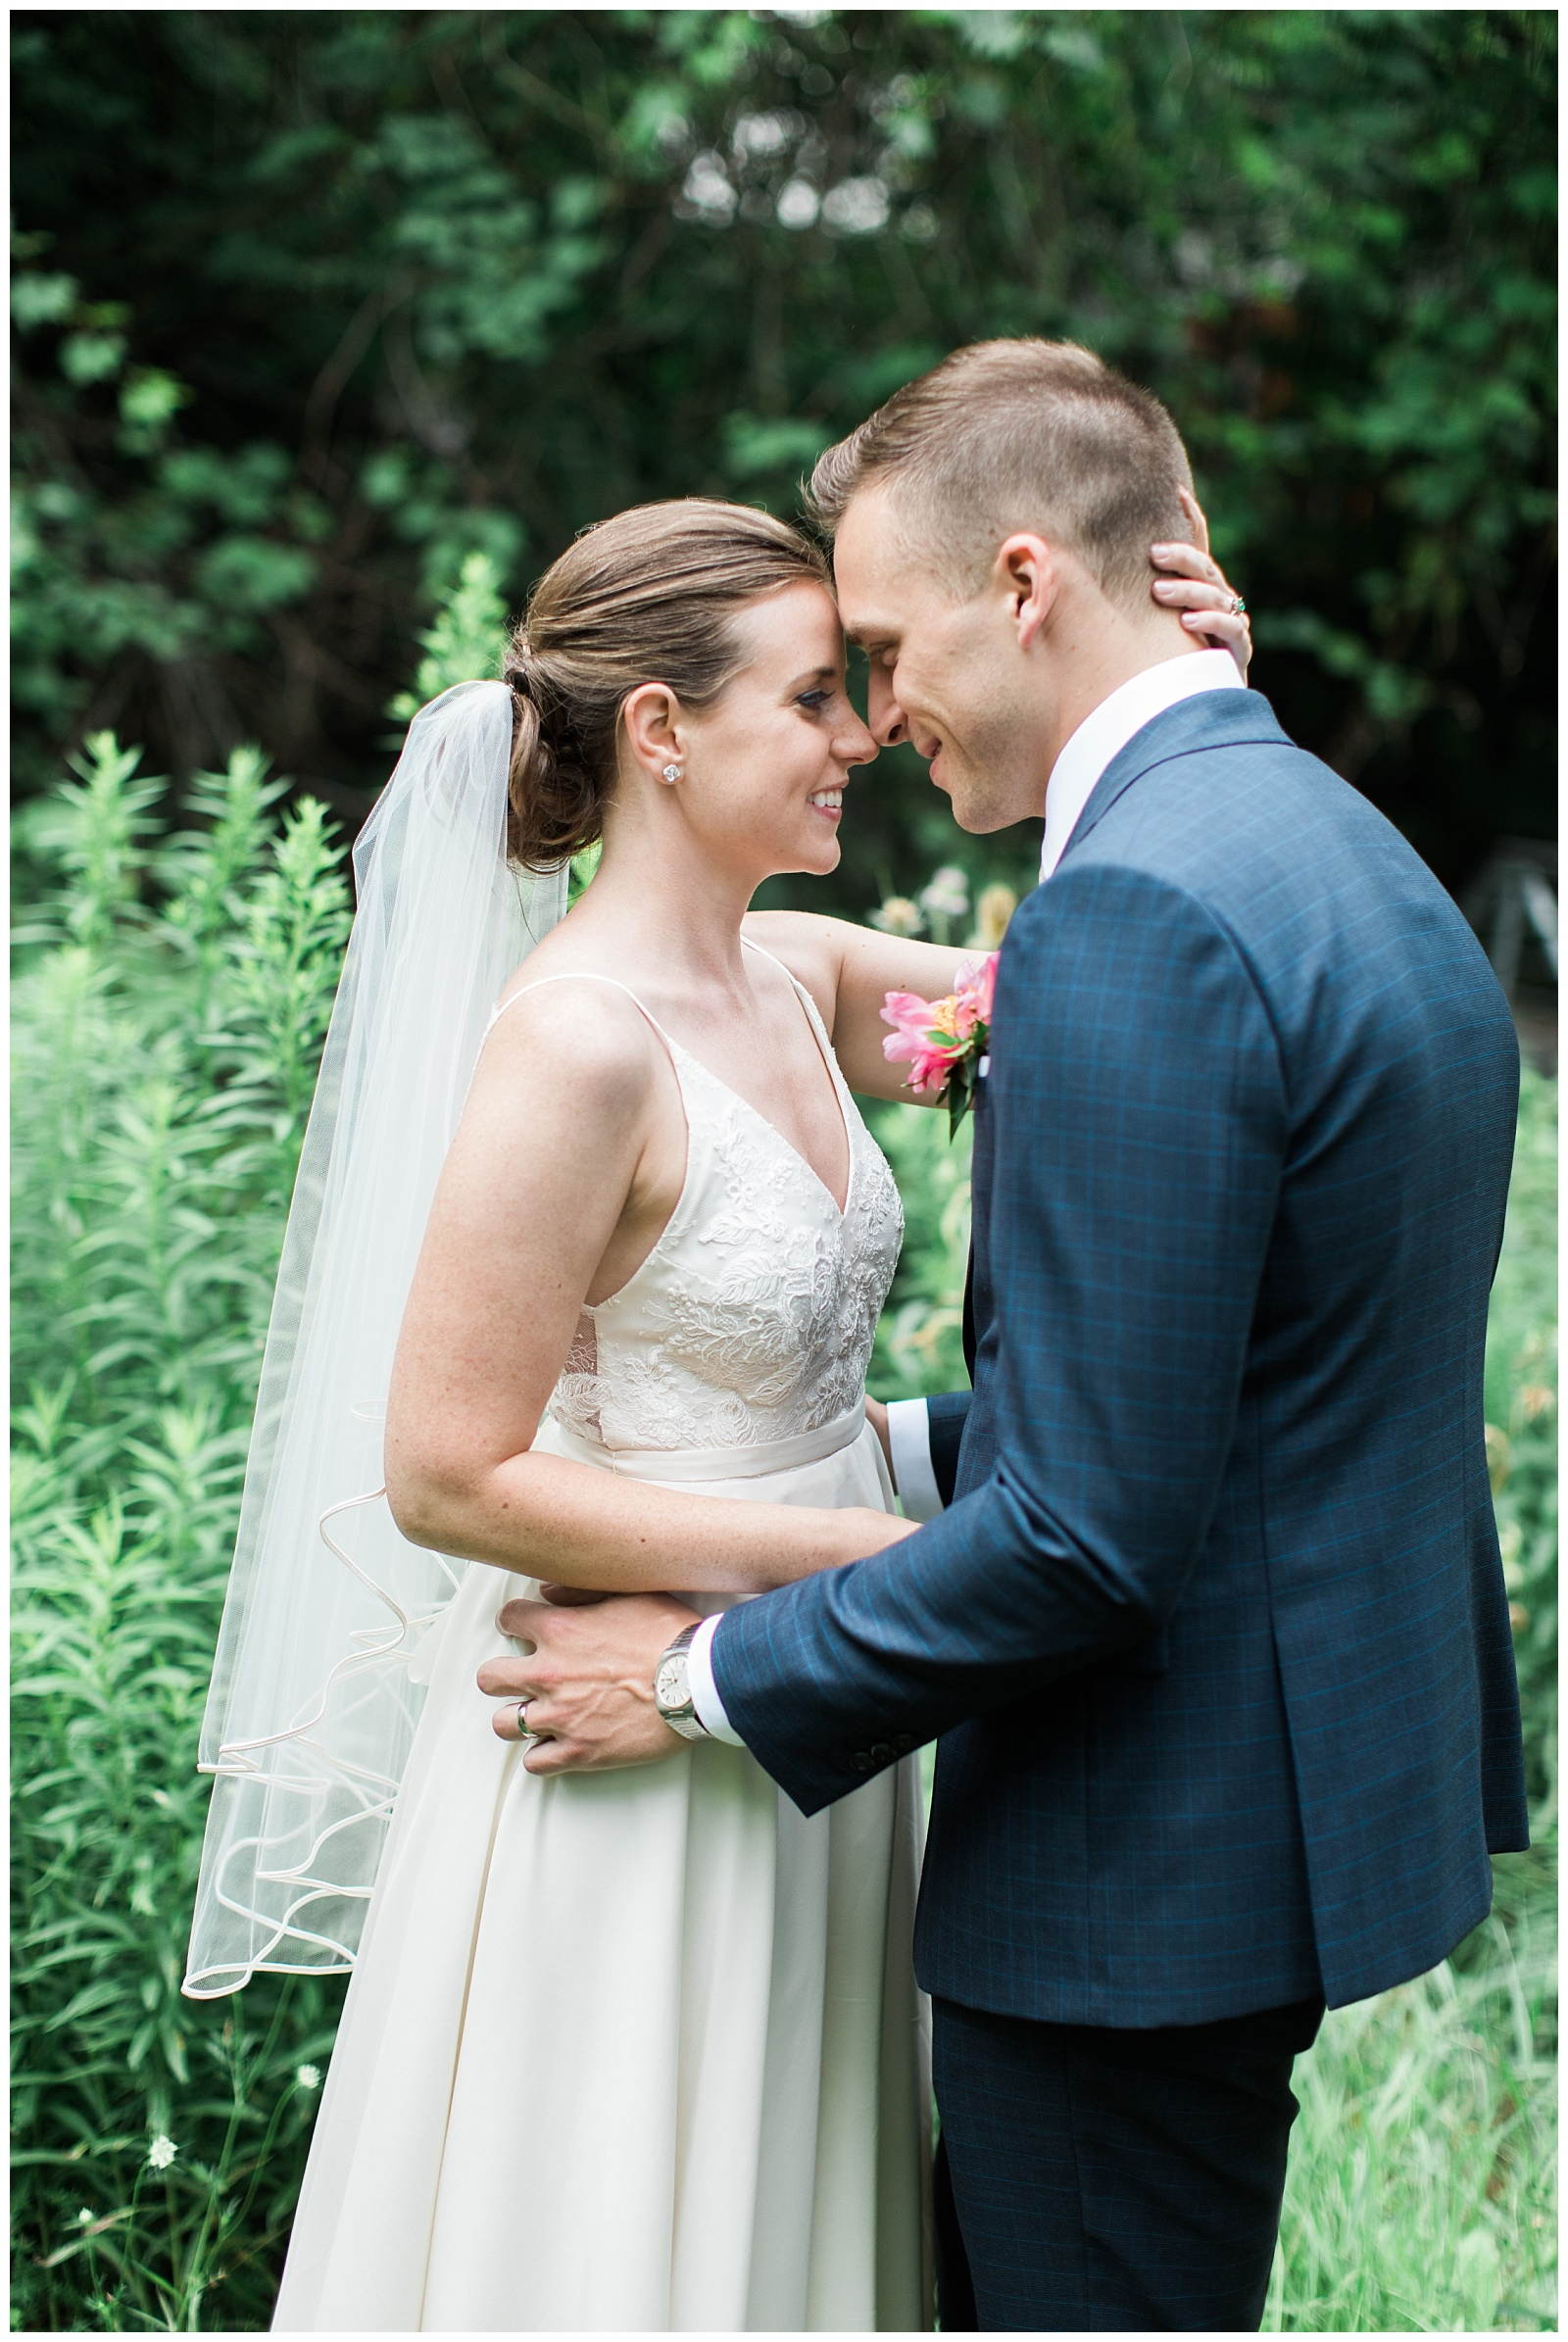 Bride and Groom touching noses in embrace with greenery backdrop at Guelph Ontario Wedding | Ontario Wedding Photographer | Toronto Wedding Photographer | 3photography